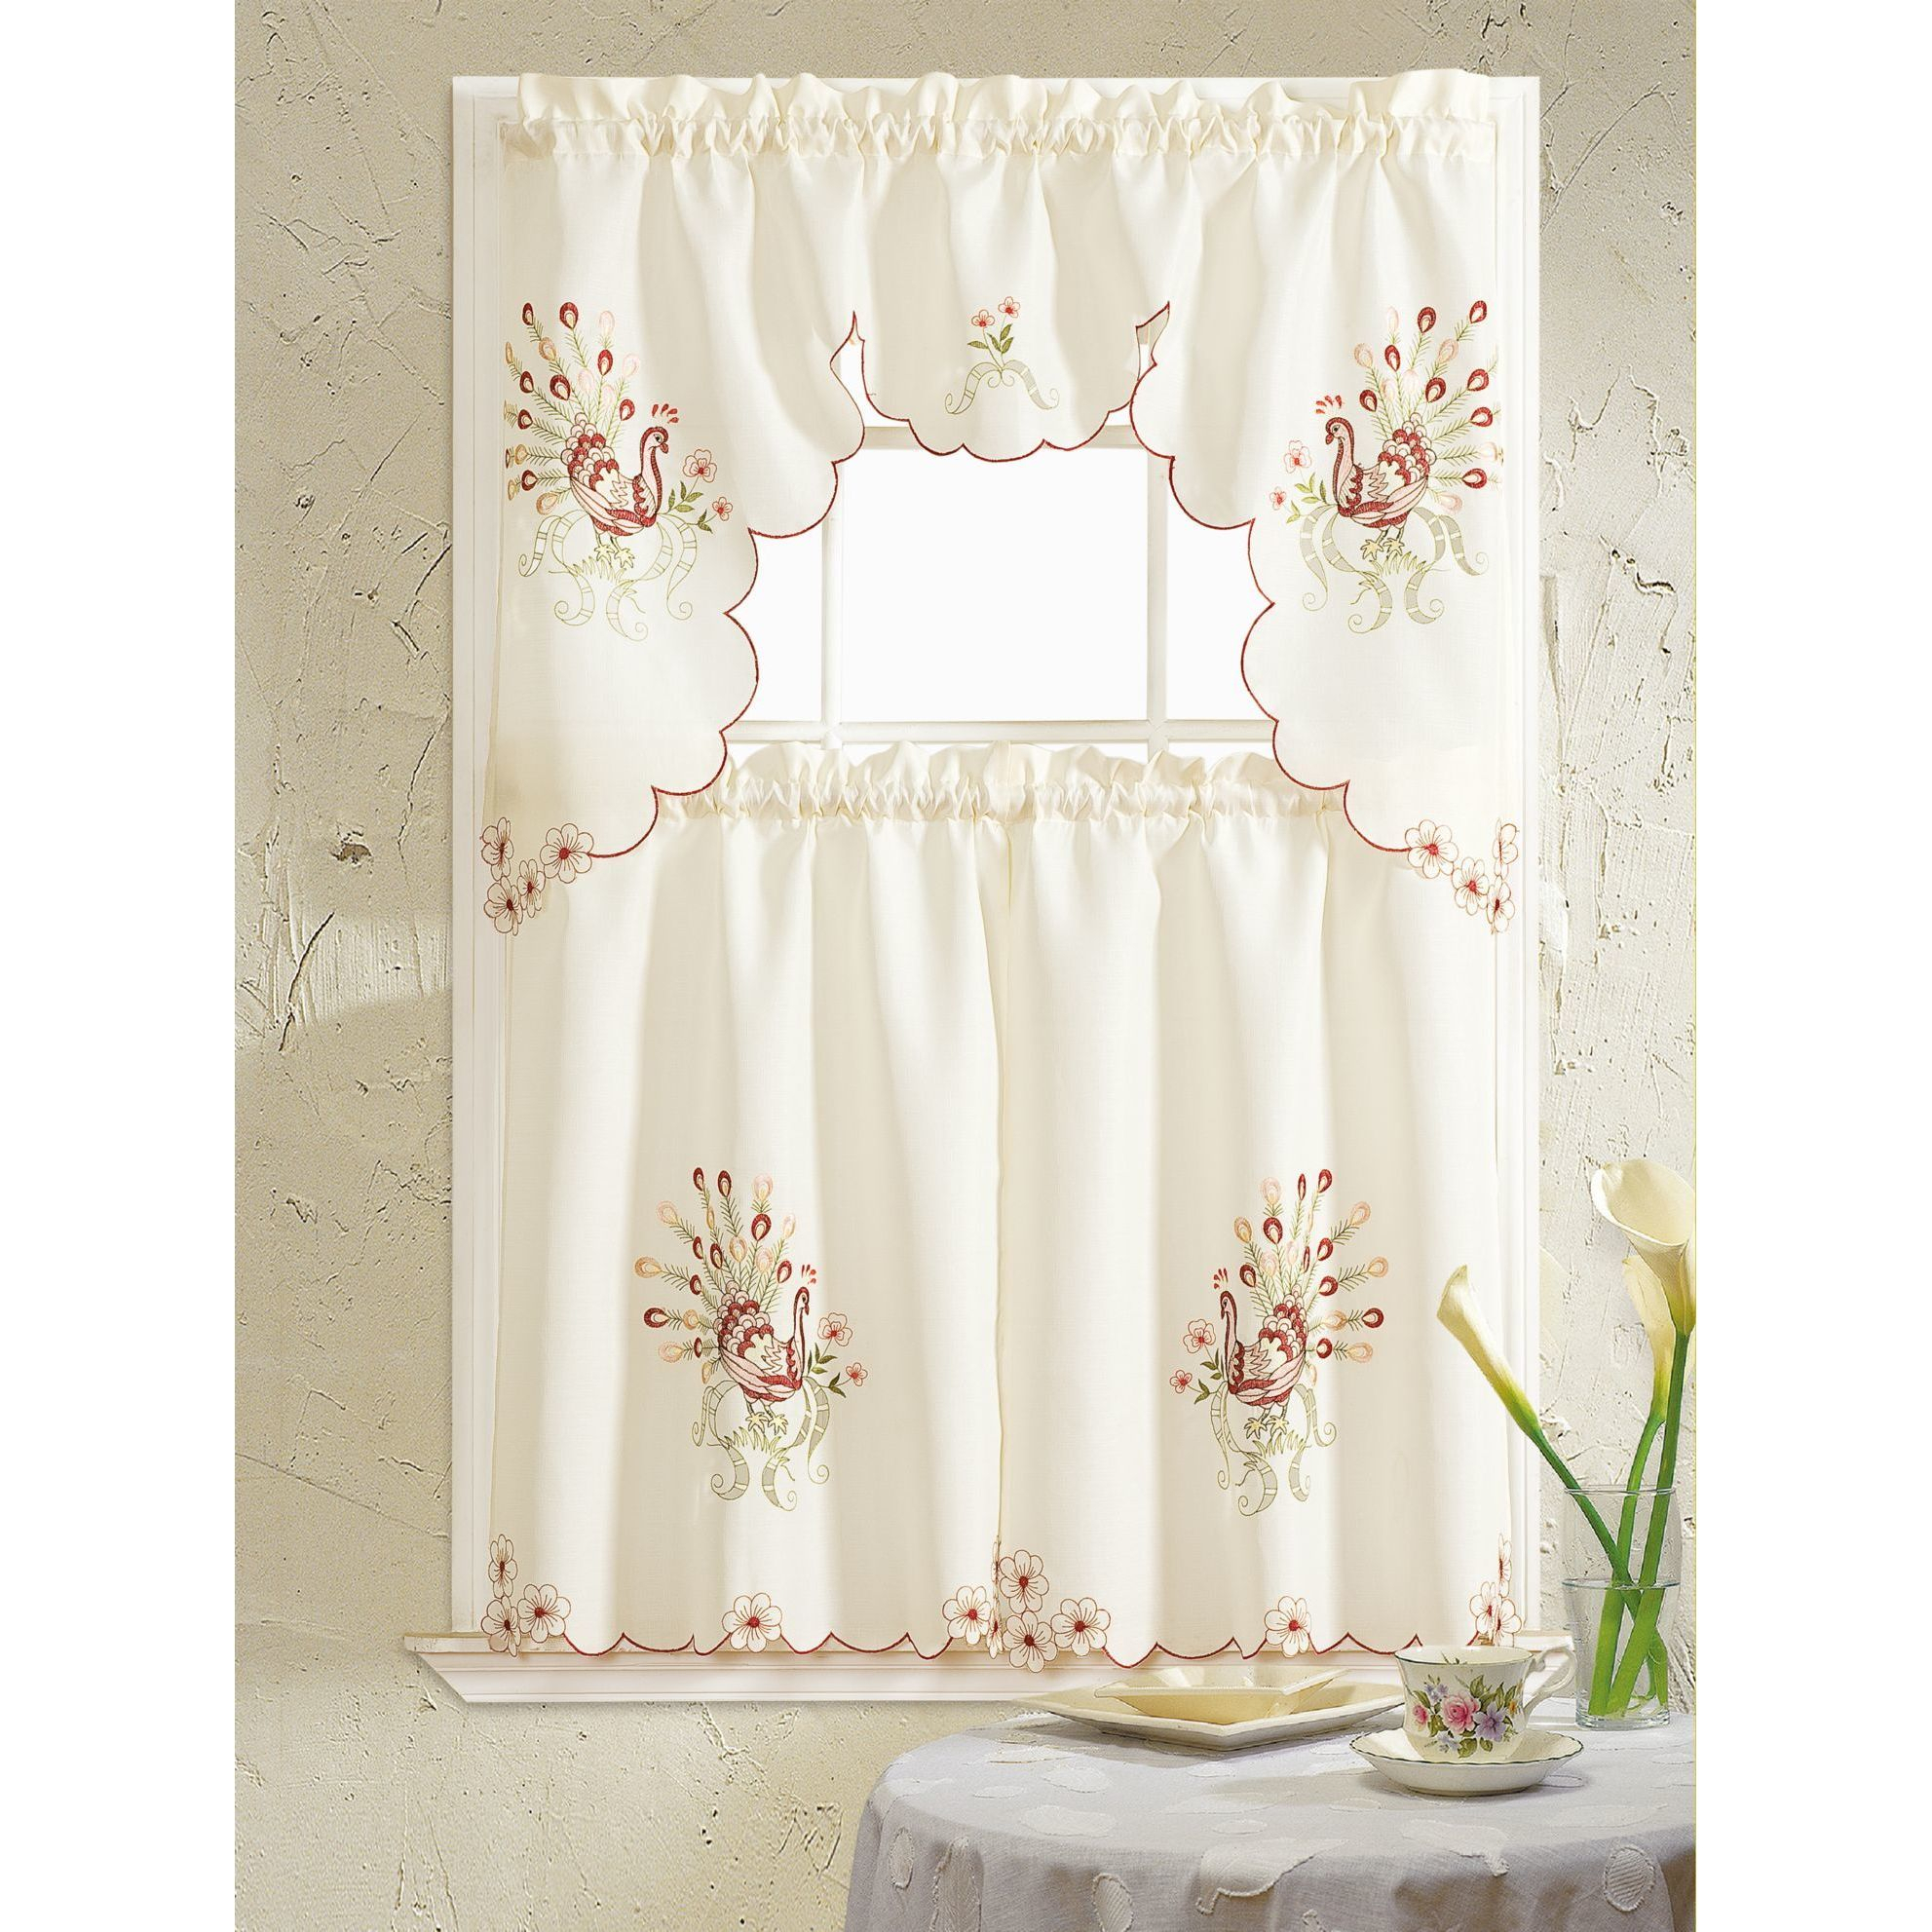 Rt Designers Collection Peacock Embroidered Tiers And Valance Kitchen Curtain Set For Embroidered Ladybugs Window Curtain Pieces (View 4 of 20)